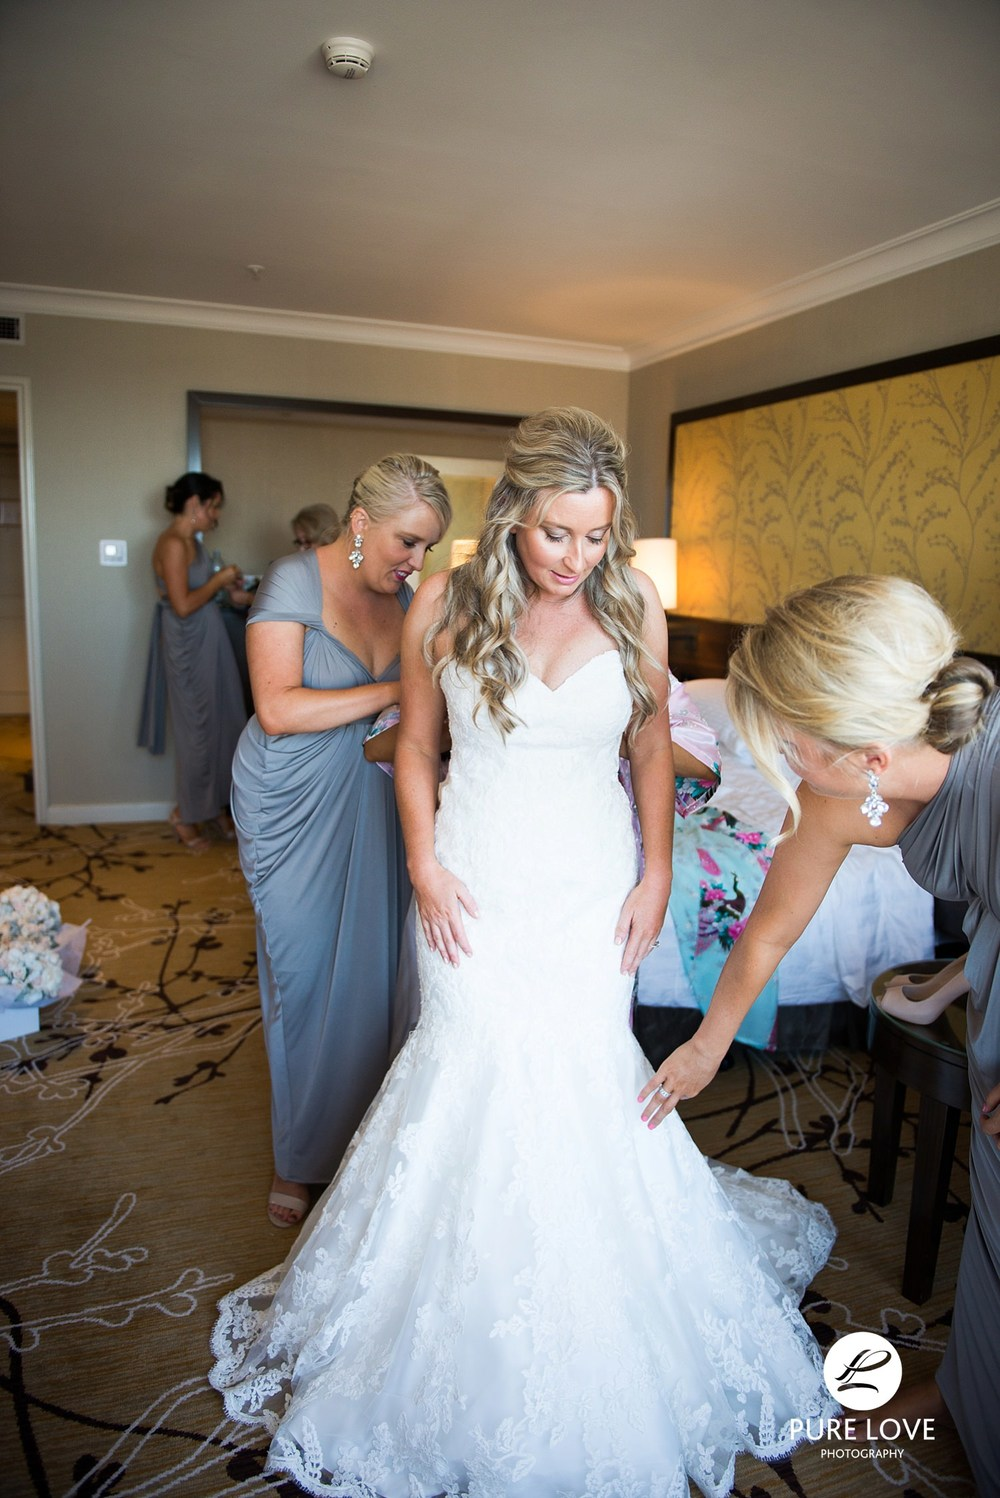 Bridesmaids helping the bride get dressed.